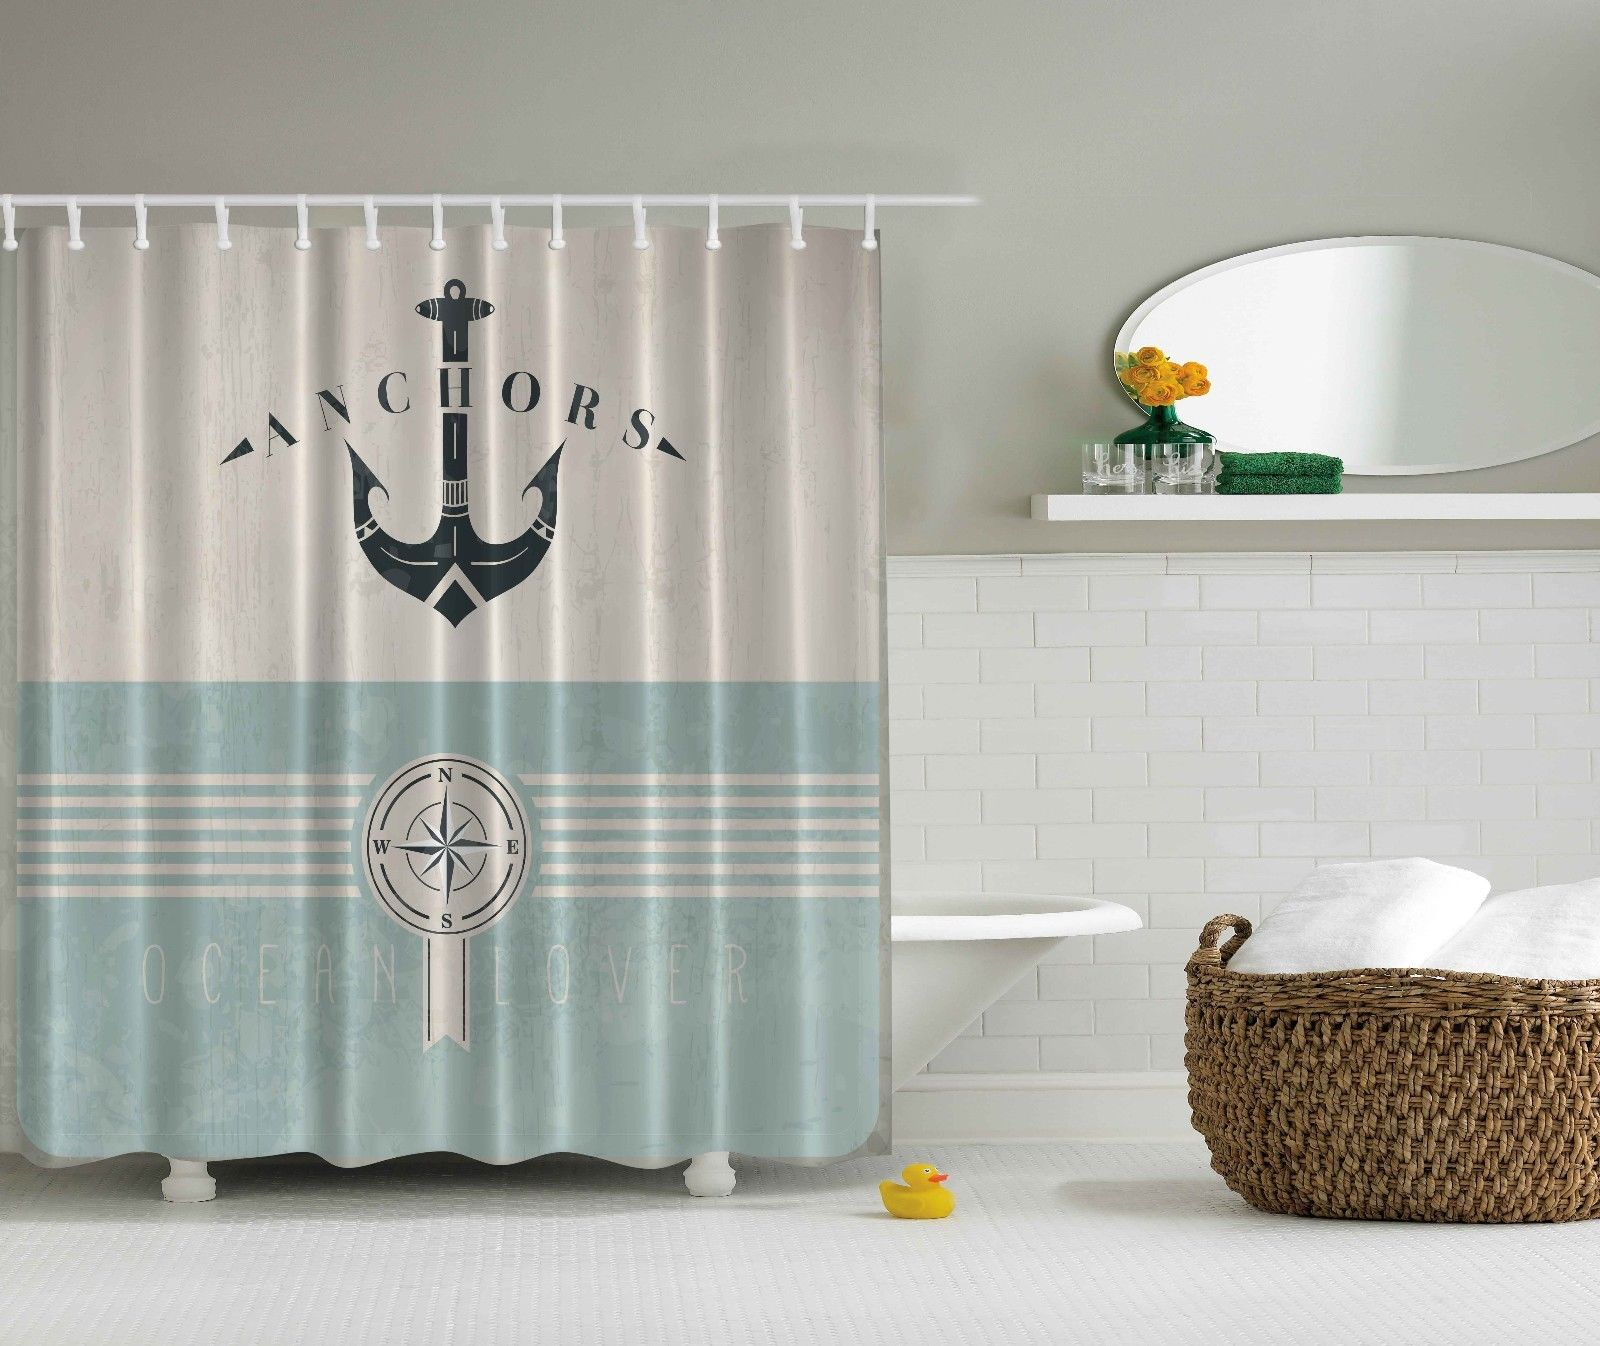 Nautical Fabric Shower Curtains Ocean Decor Nautical Anchor Sailor Sea Marine Bath Fashion Fabric Shower Curtain